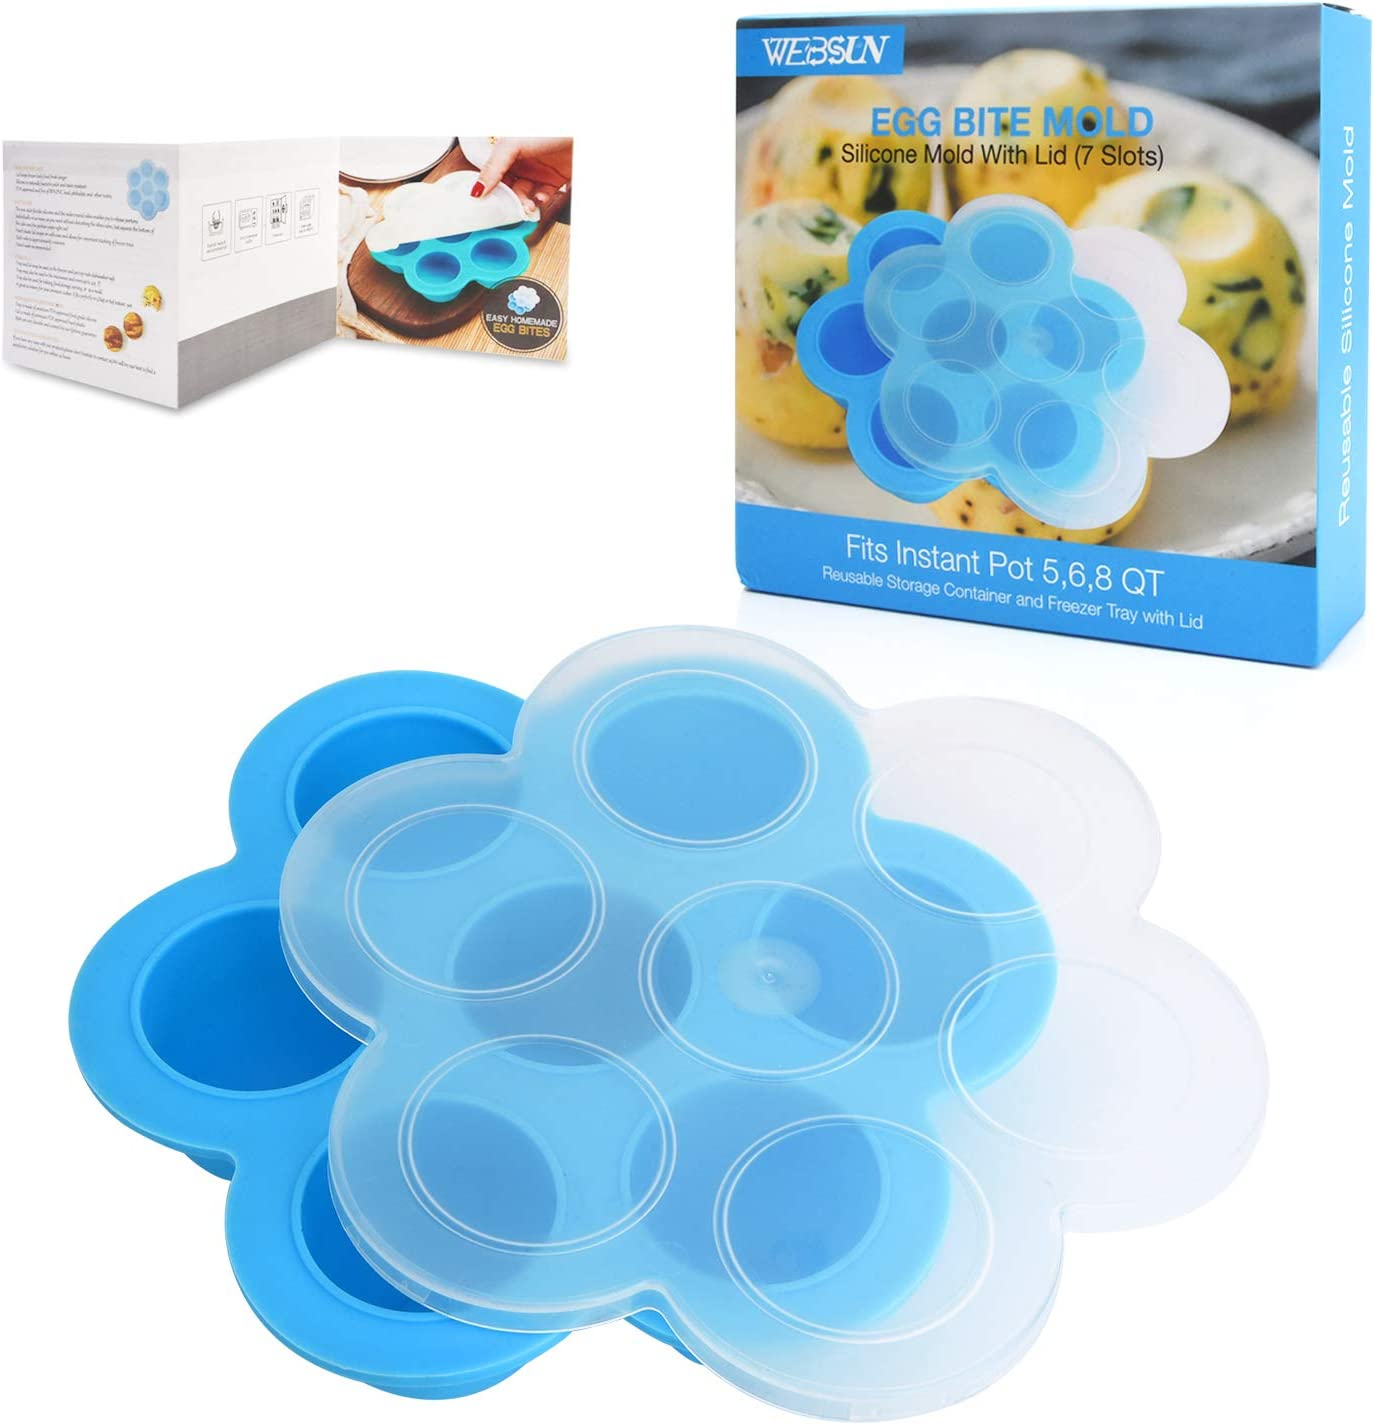 WEBSUN Silicone Egg Bites Molds for Instant Pot Accessories for 5,6,8 qt Pressure Cooker, Reusable Storage Container, Freezer Trays with Lid - with Recipe User Guide